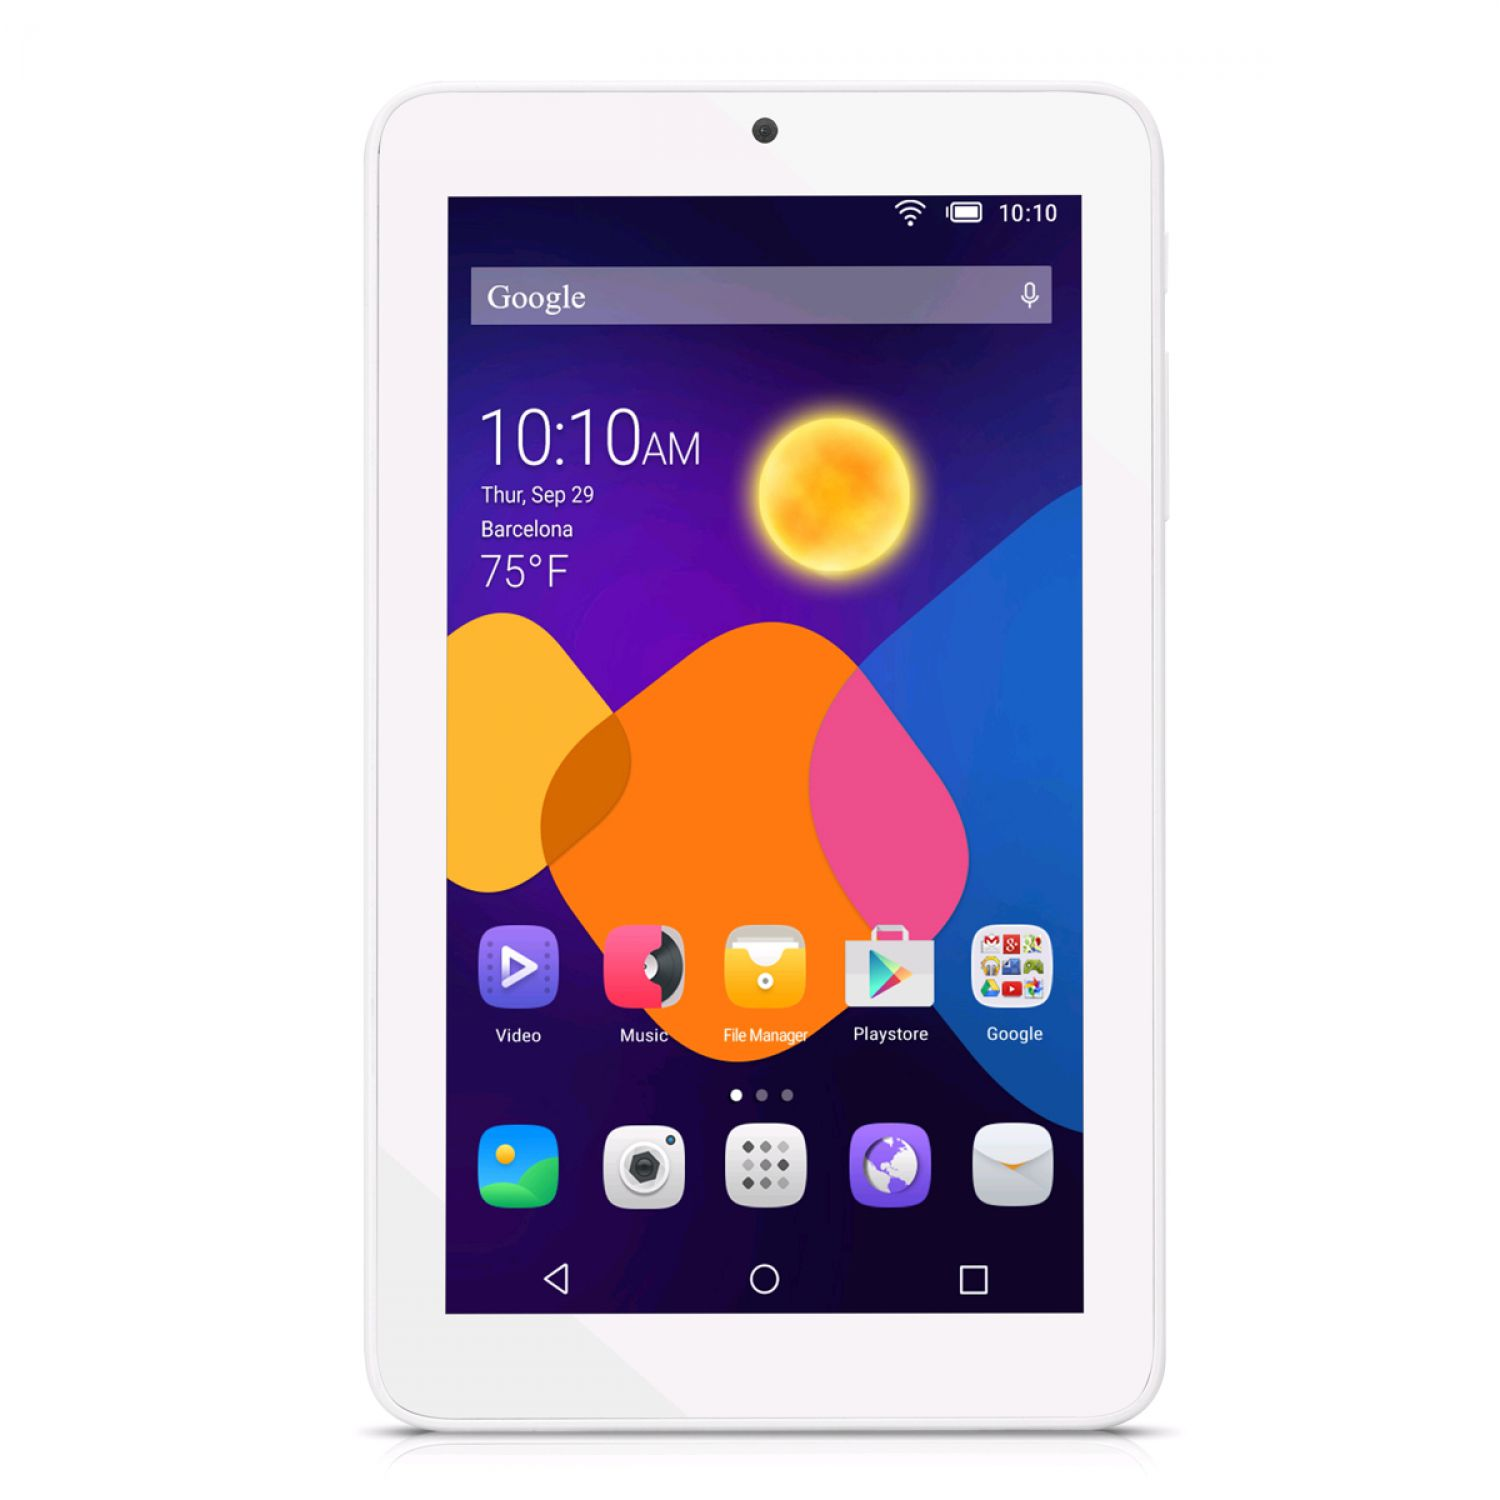 alcatel one touch pixi 3 8gb 7 zoll android tablet white. Black Bedroom Furniture Sets. Home Design Ideas